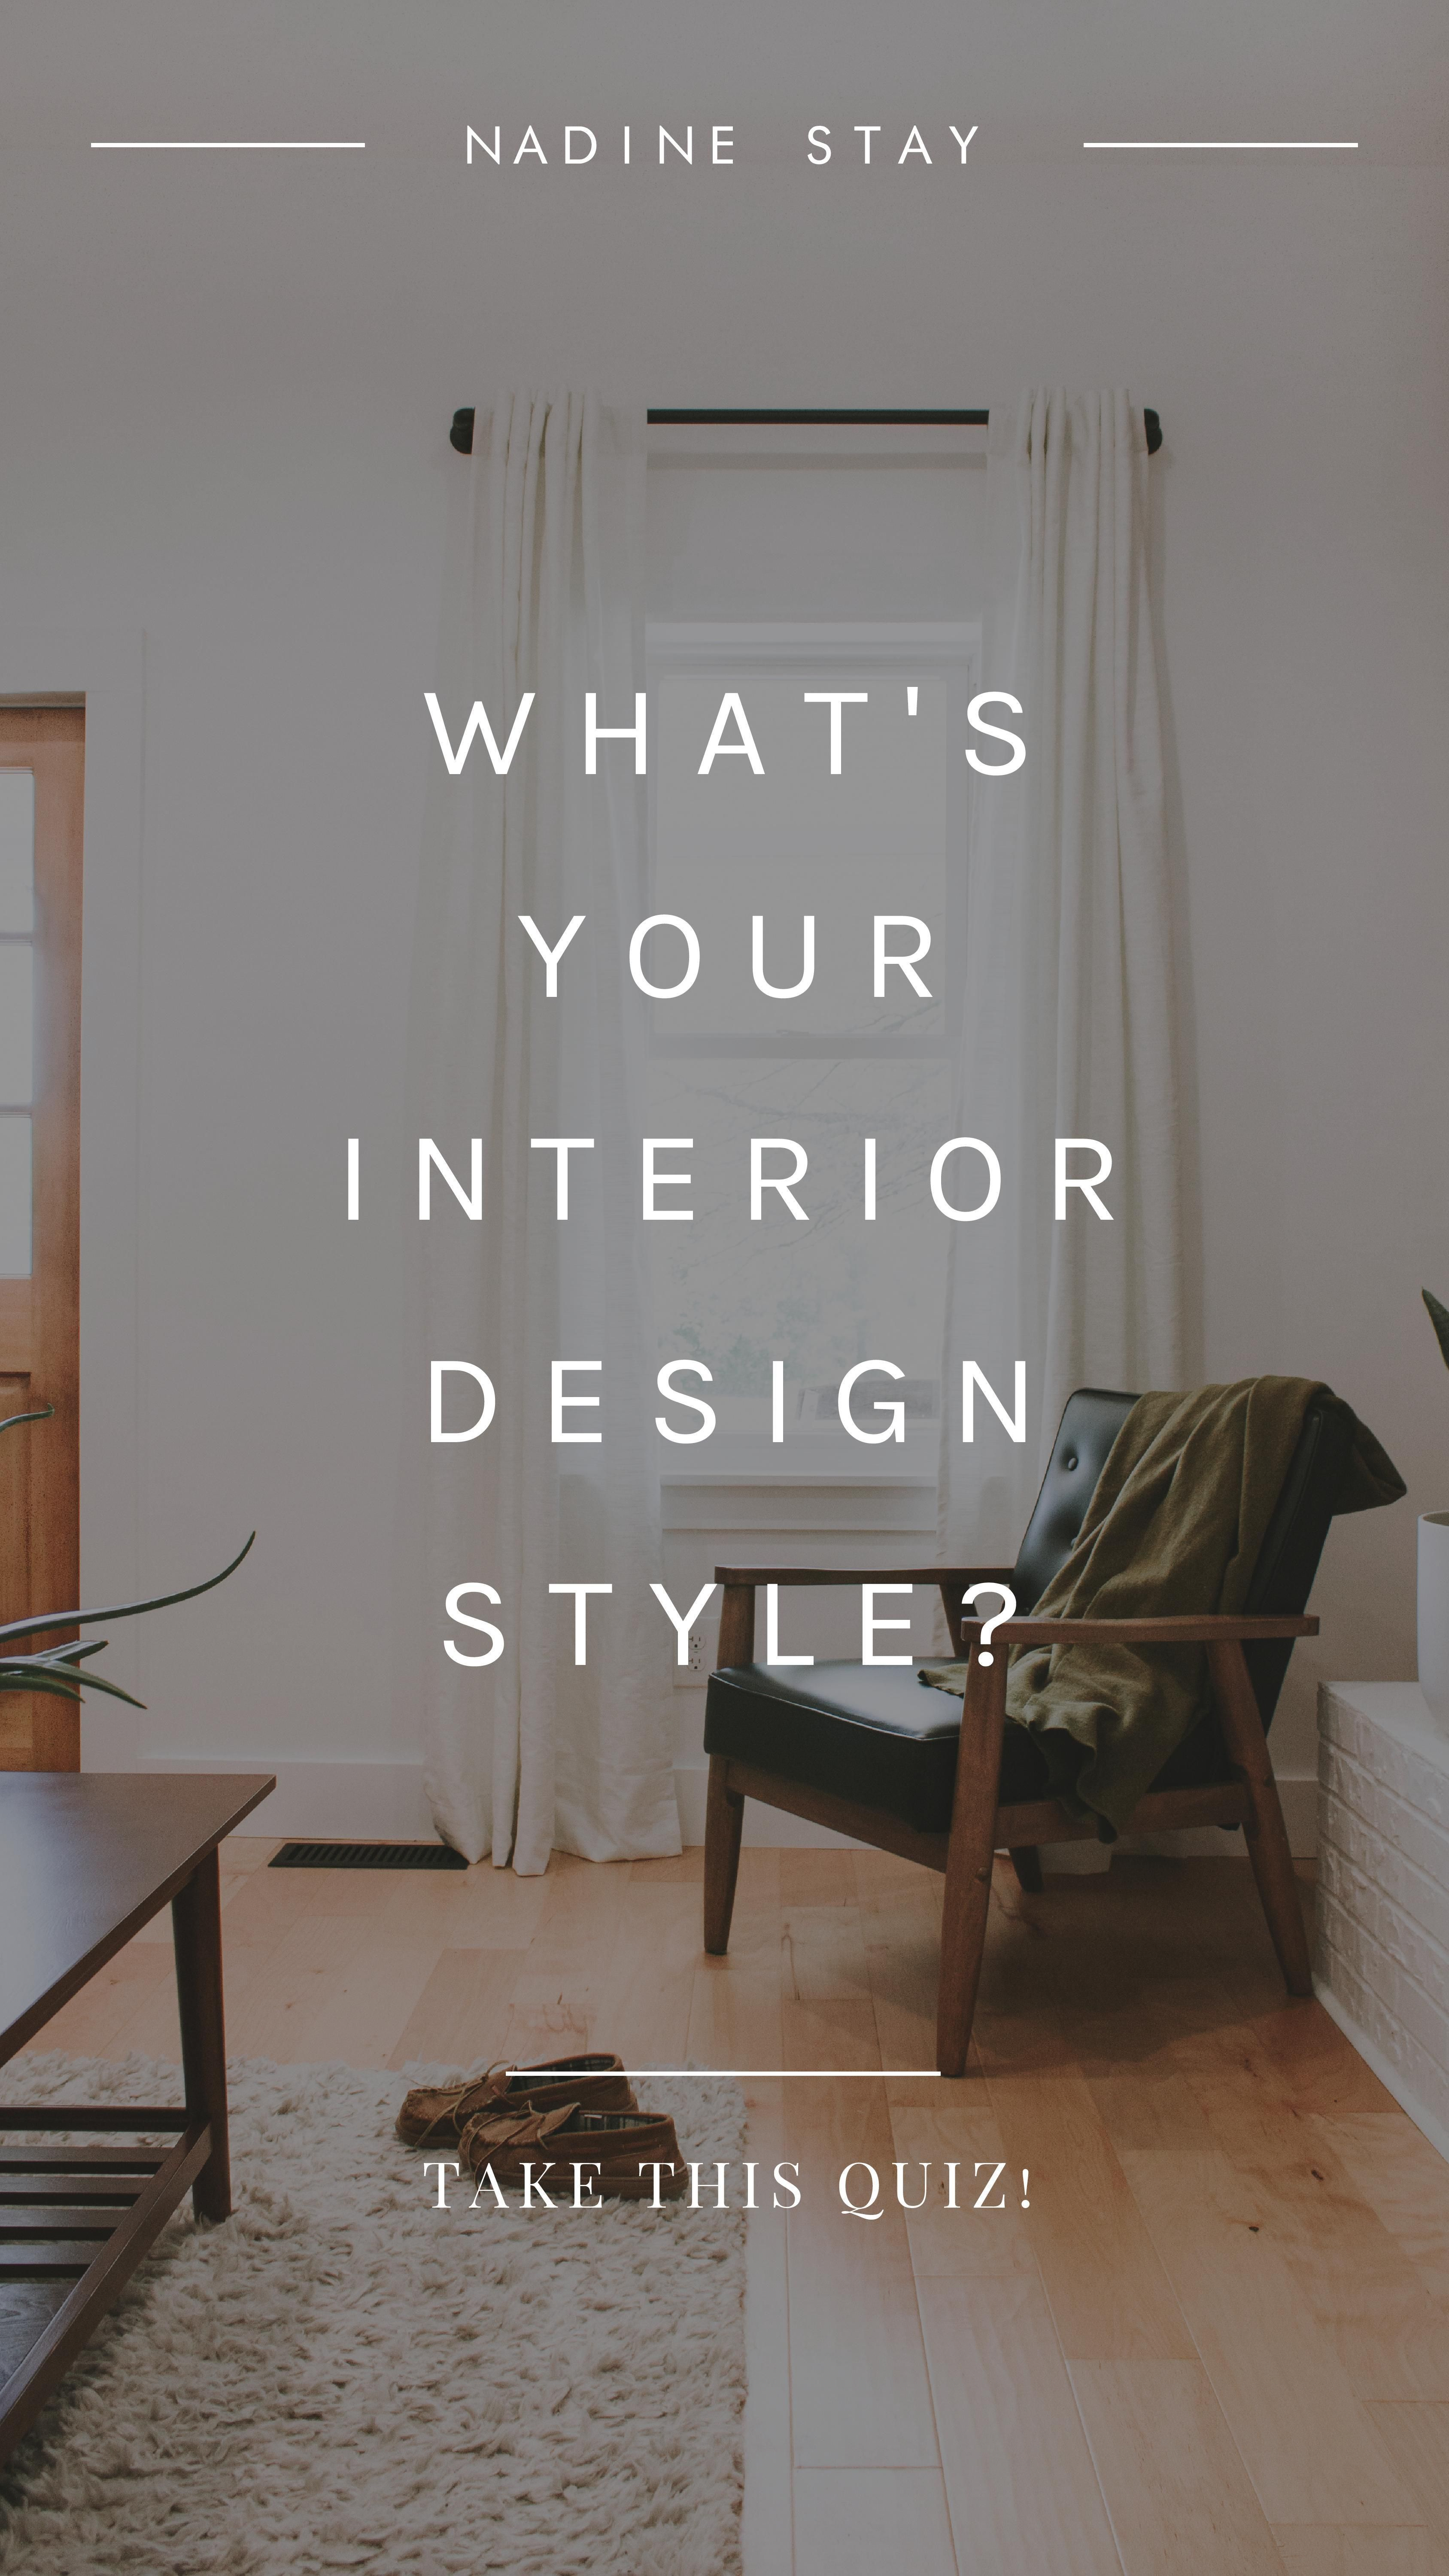 What S Your Interior Design Style Take My Interior Design Quiz To Find Out Do You L Design Style Quiz Interior Design Styles Quiz Traditional Interior Design